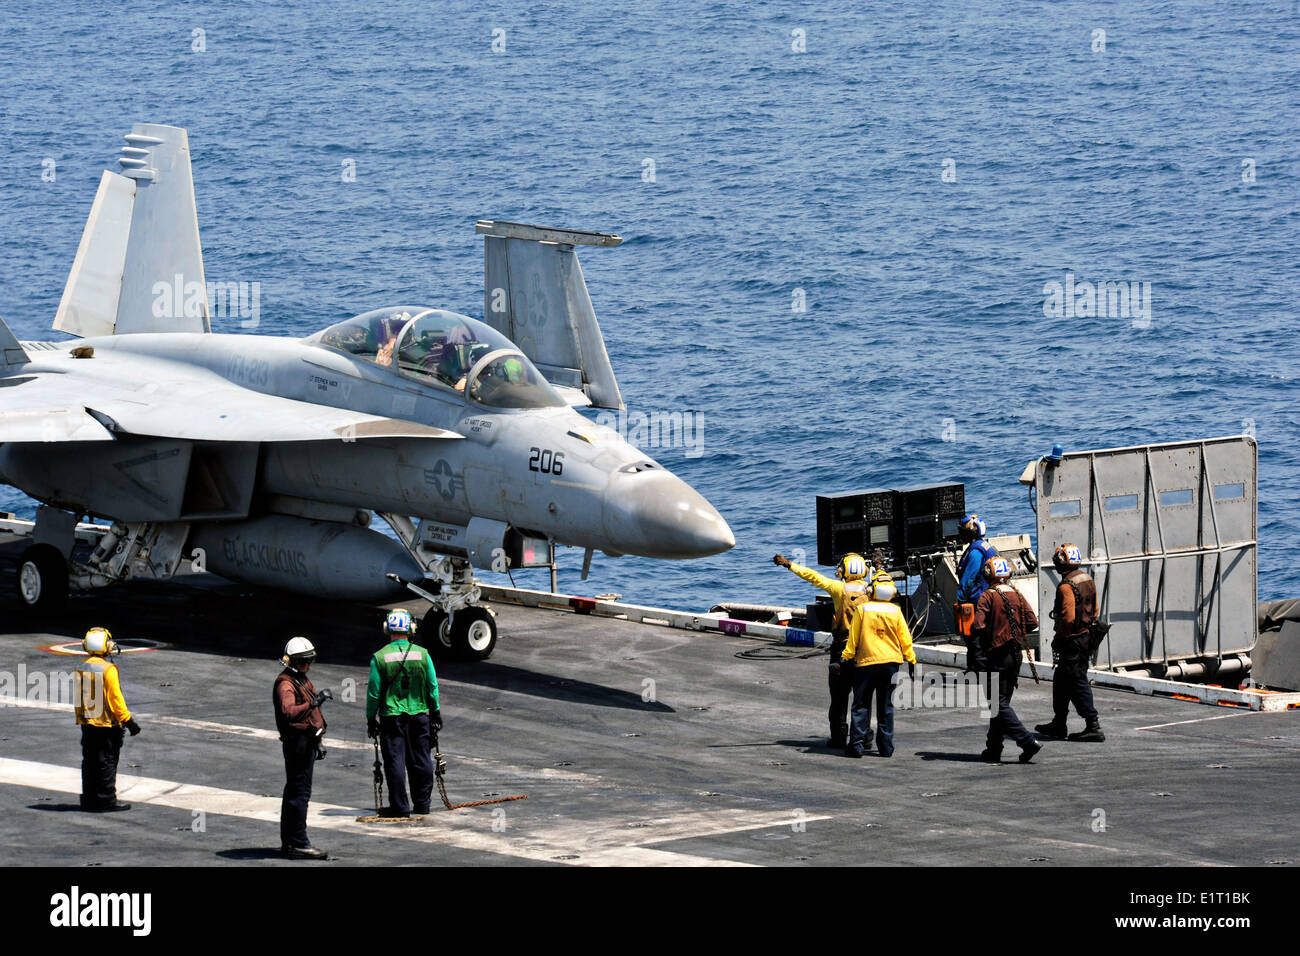 A US Navy sailors direct a F/A-18F Super Hornet fighter aircraft into launch position on the flight deck of aircraft carrier USS George H.W. Bush June 7, 2014 in the Arabian Sea. - Stock Image